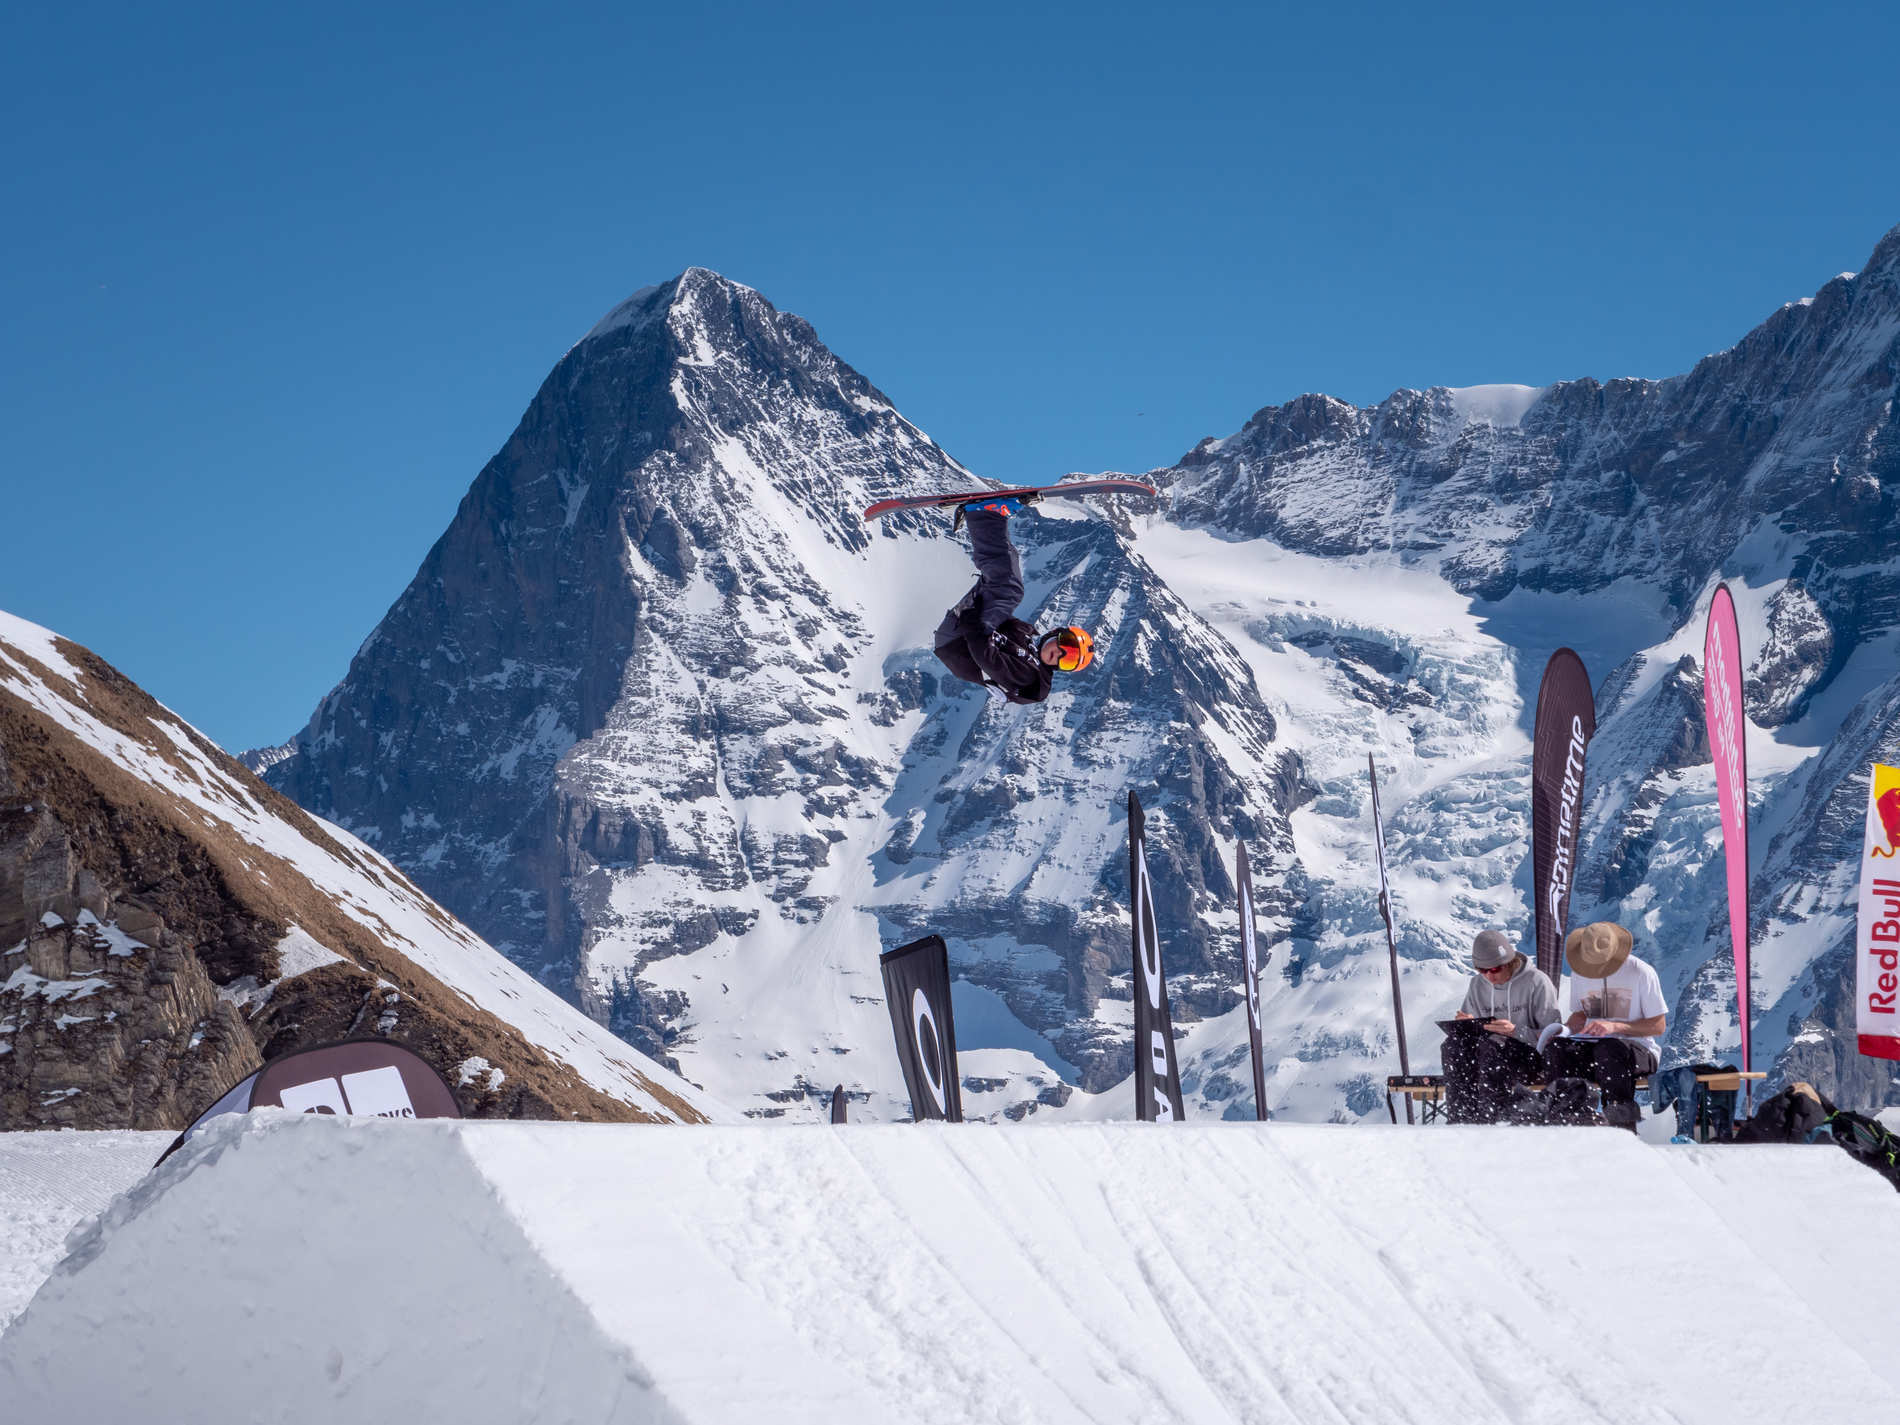 schilthorn 23 03 2019 action fs unknown patrick luchs qparks 020